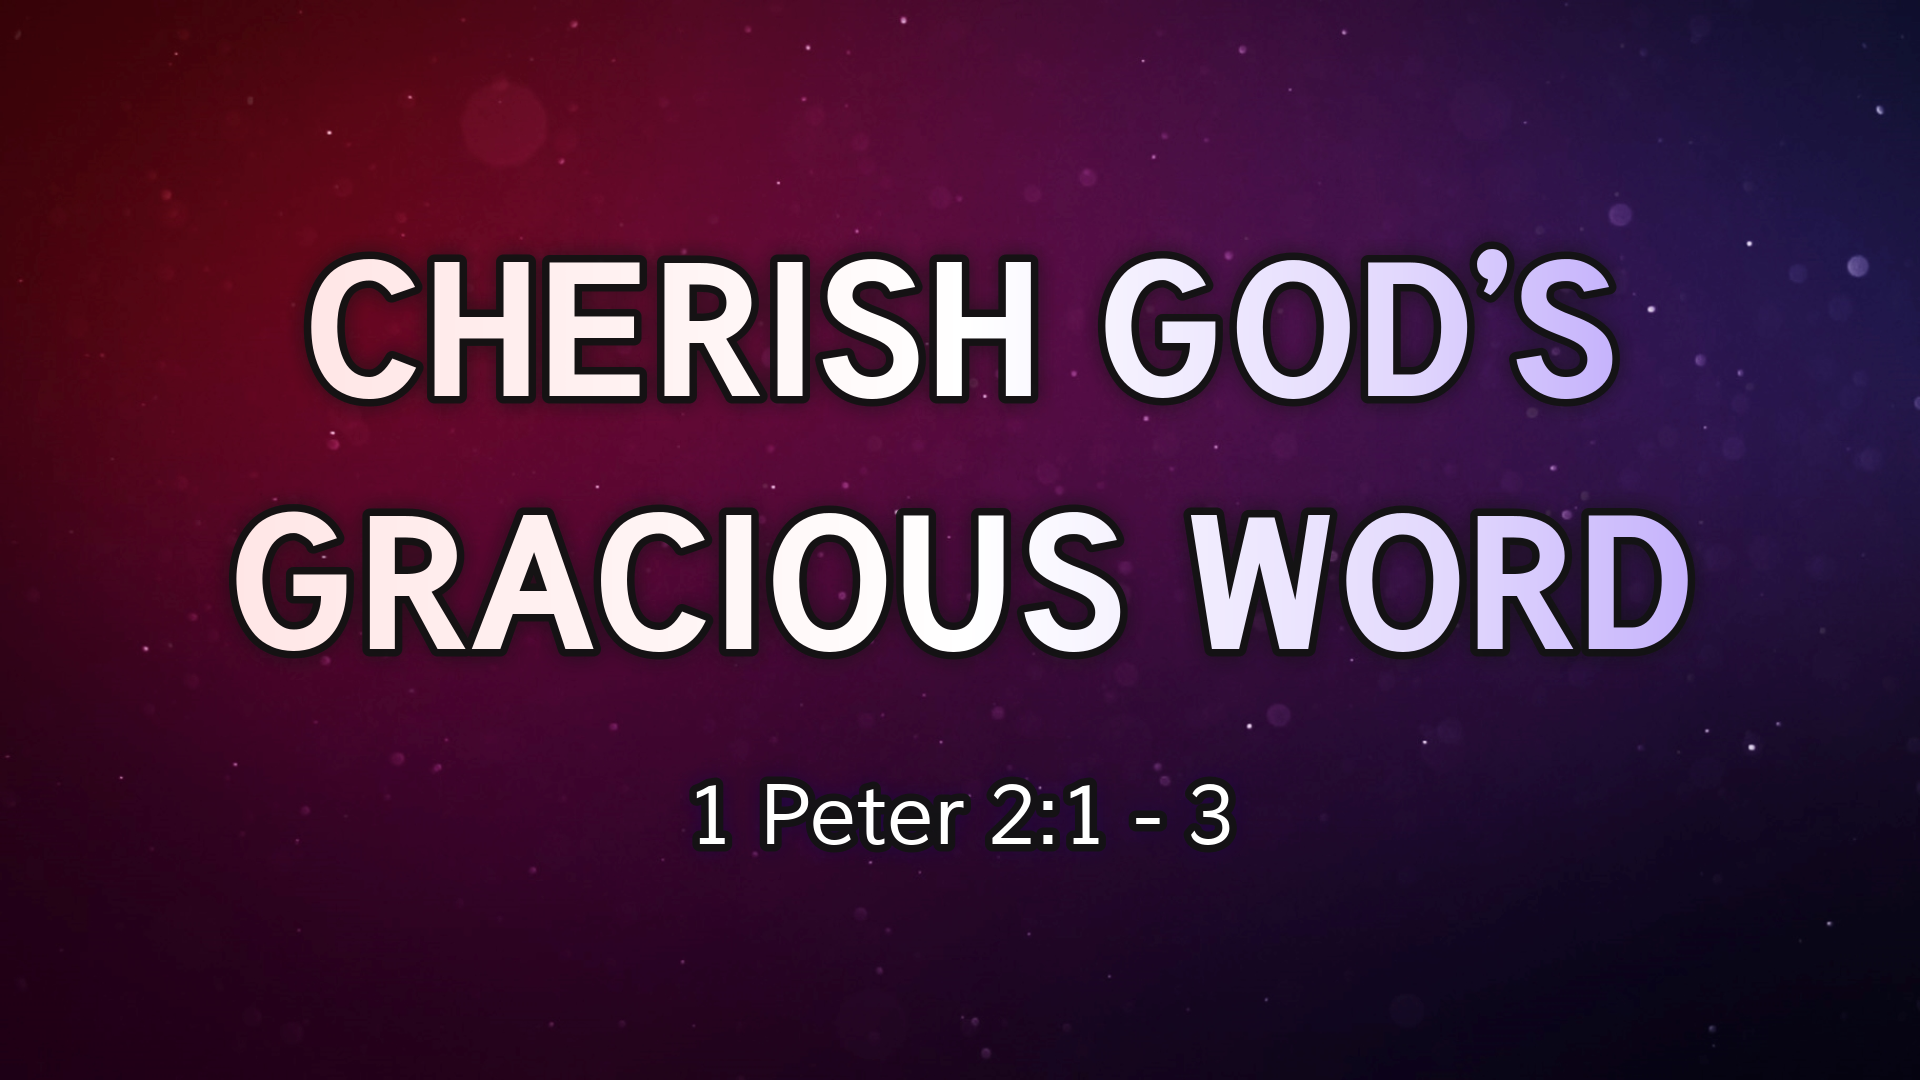 Cherish God's Gracious Word - Faithlife Sermons